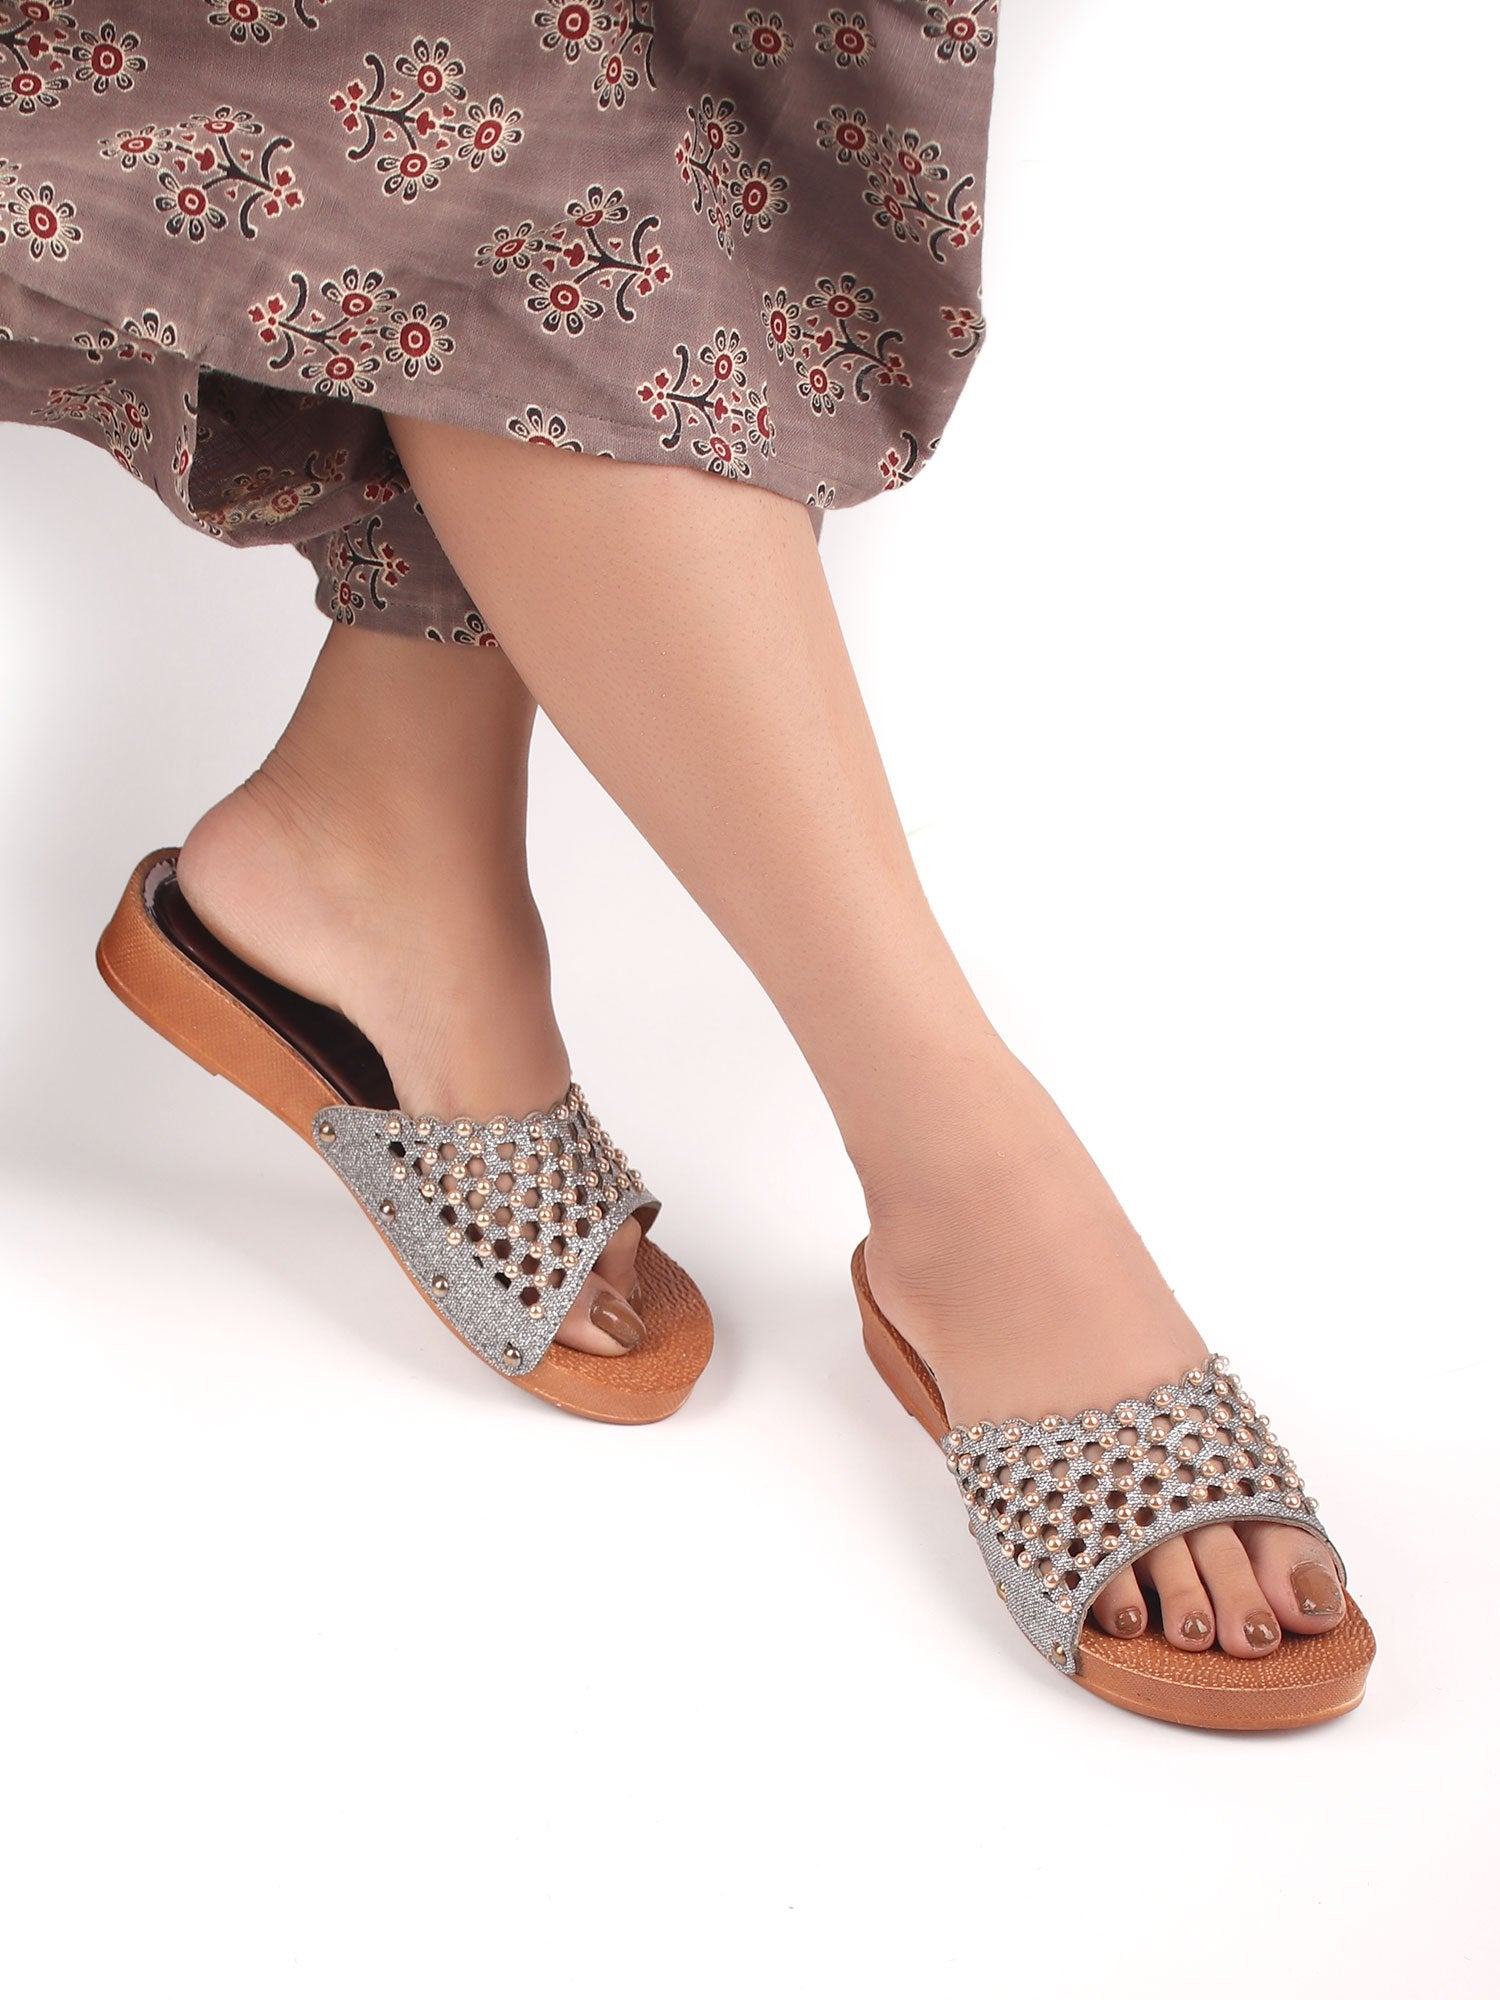 PEARL STUDDED PLATFORM SANDALS